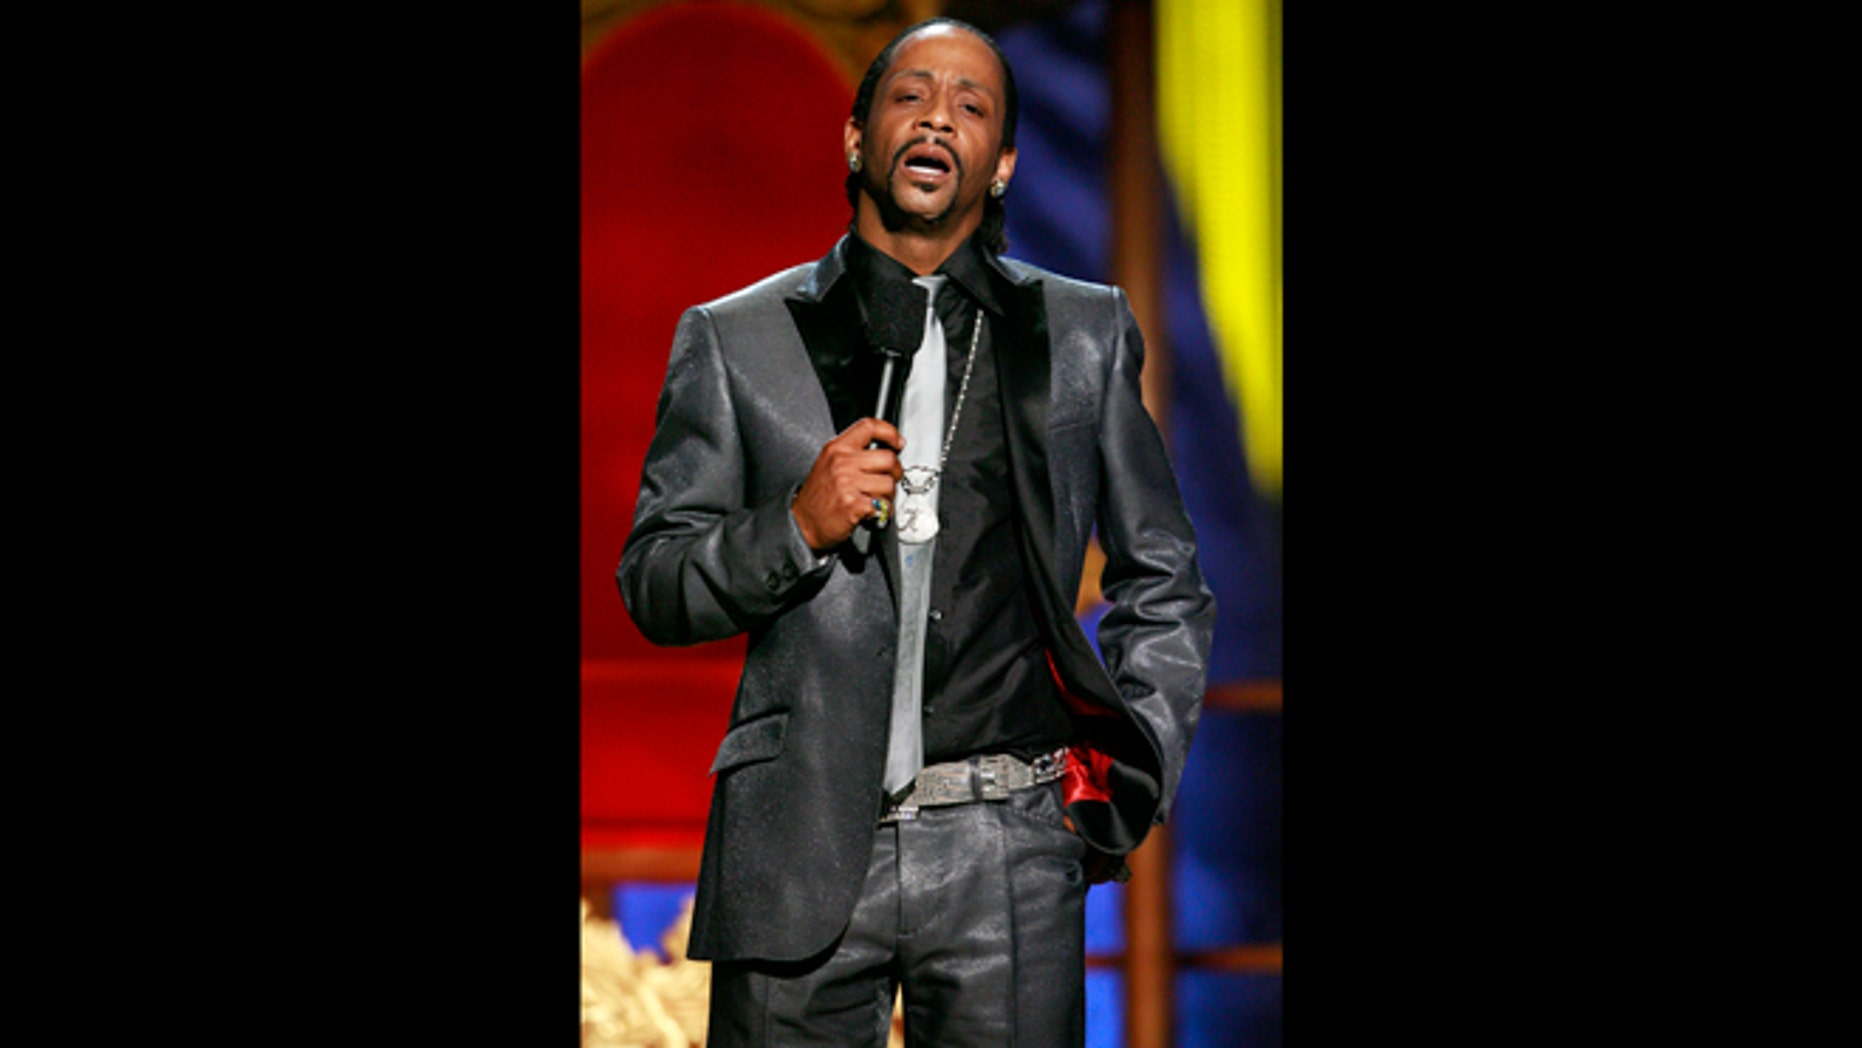 """July 22, 2007: File photo, Katt Williams performs onstage during the """"Comedy Central Roast of Flavor Flav,"""" in Burbank, Calif."""